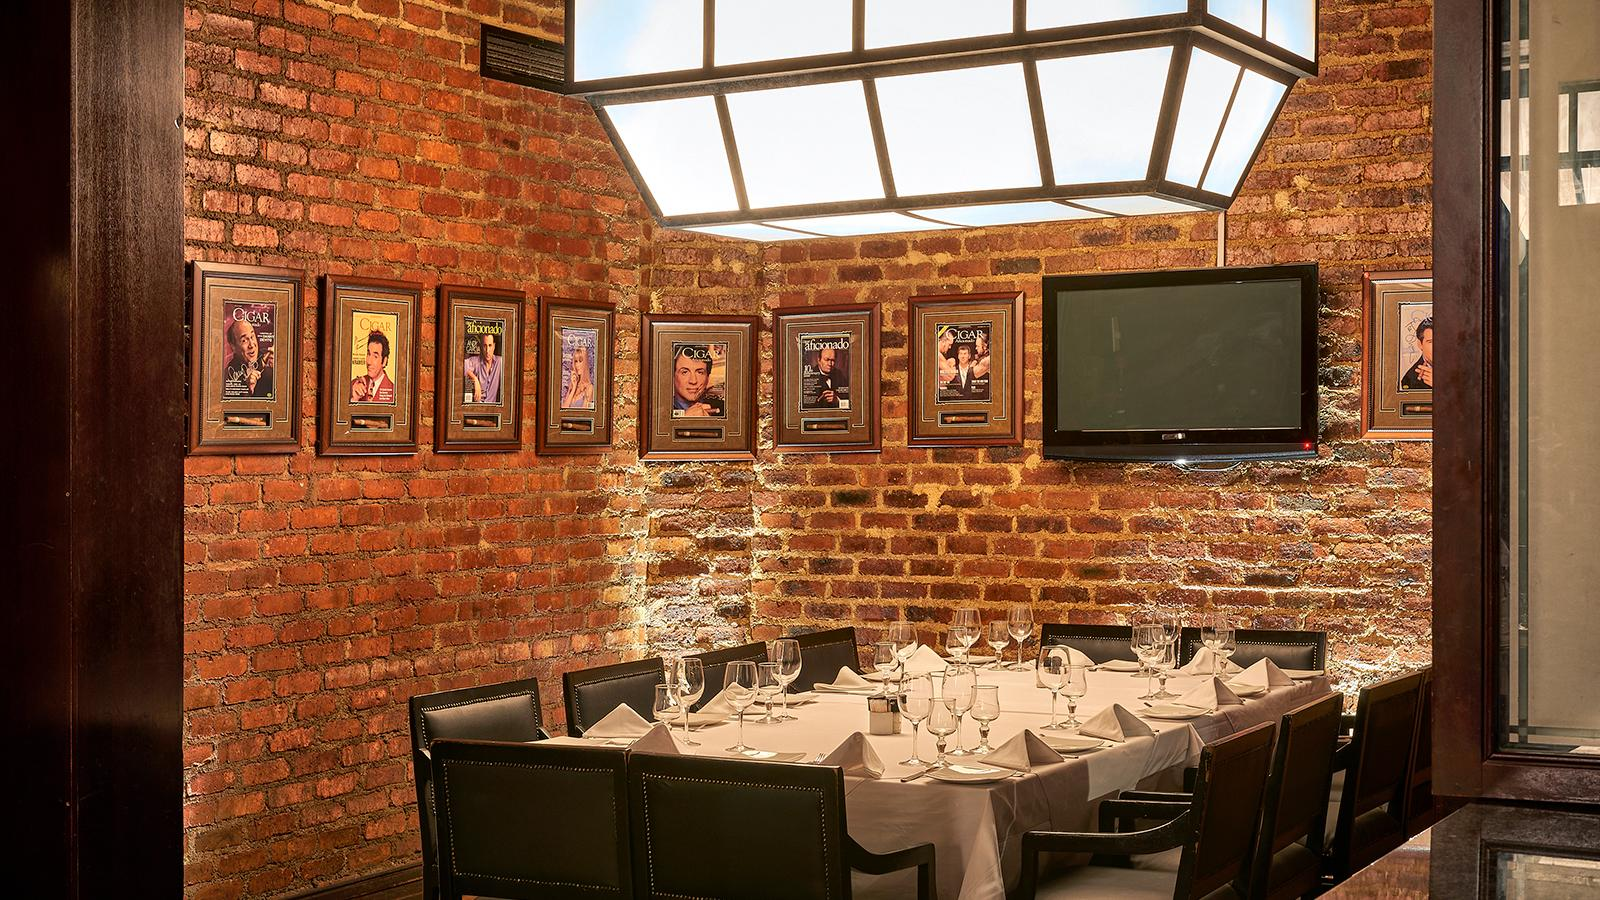 Adorning the walls at Katzy's are several Cigar Aficionado covers, with many featuring the autographs of its celebrity subjects.